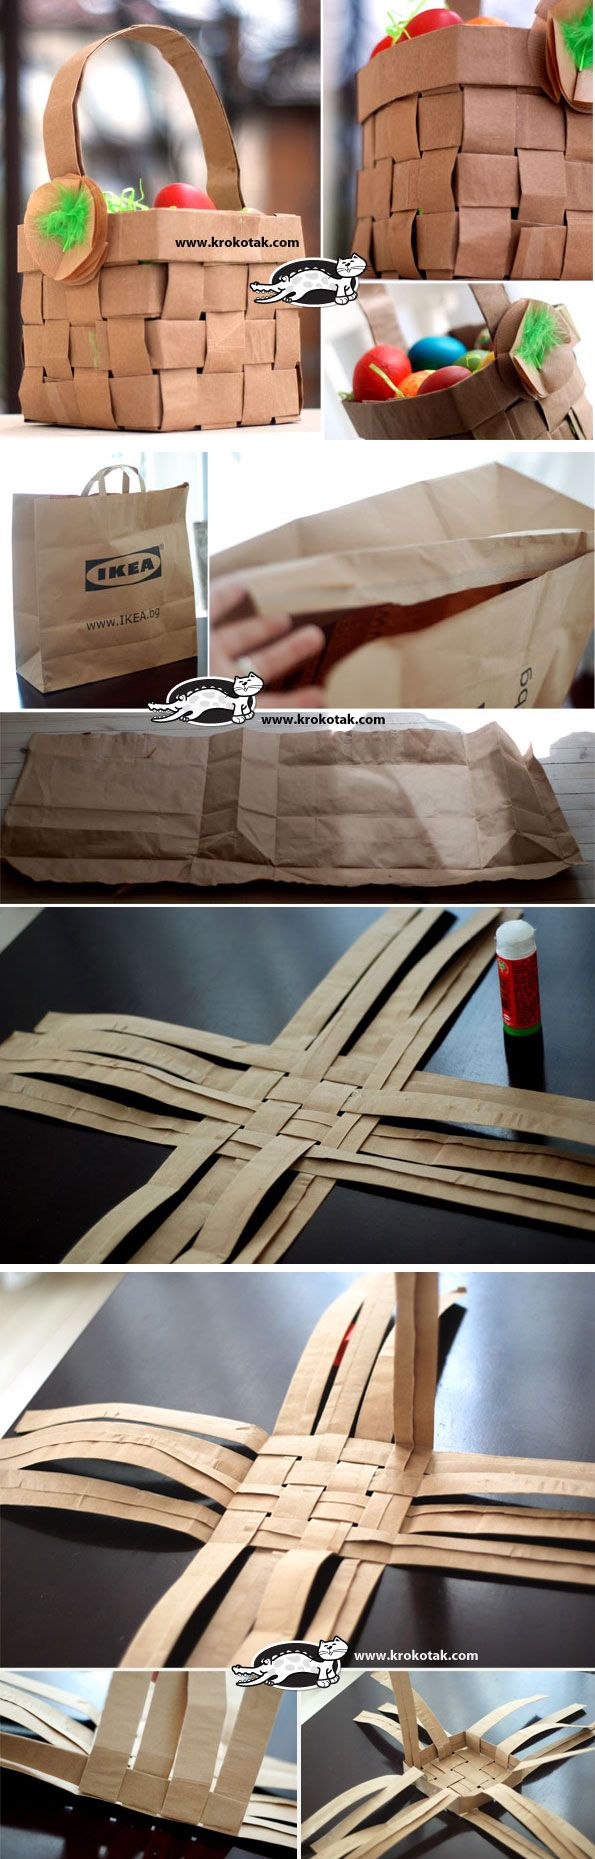 Recycled Paper Bag Basket Recycle Craft Pinterest